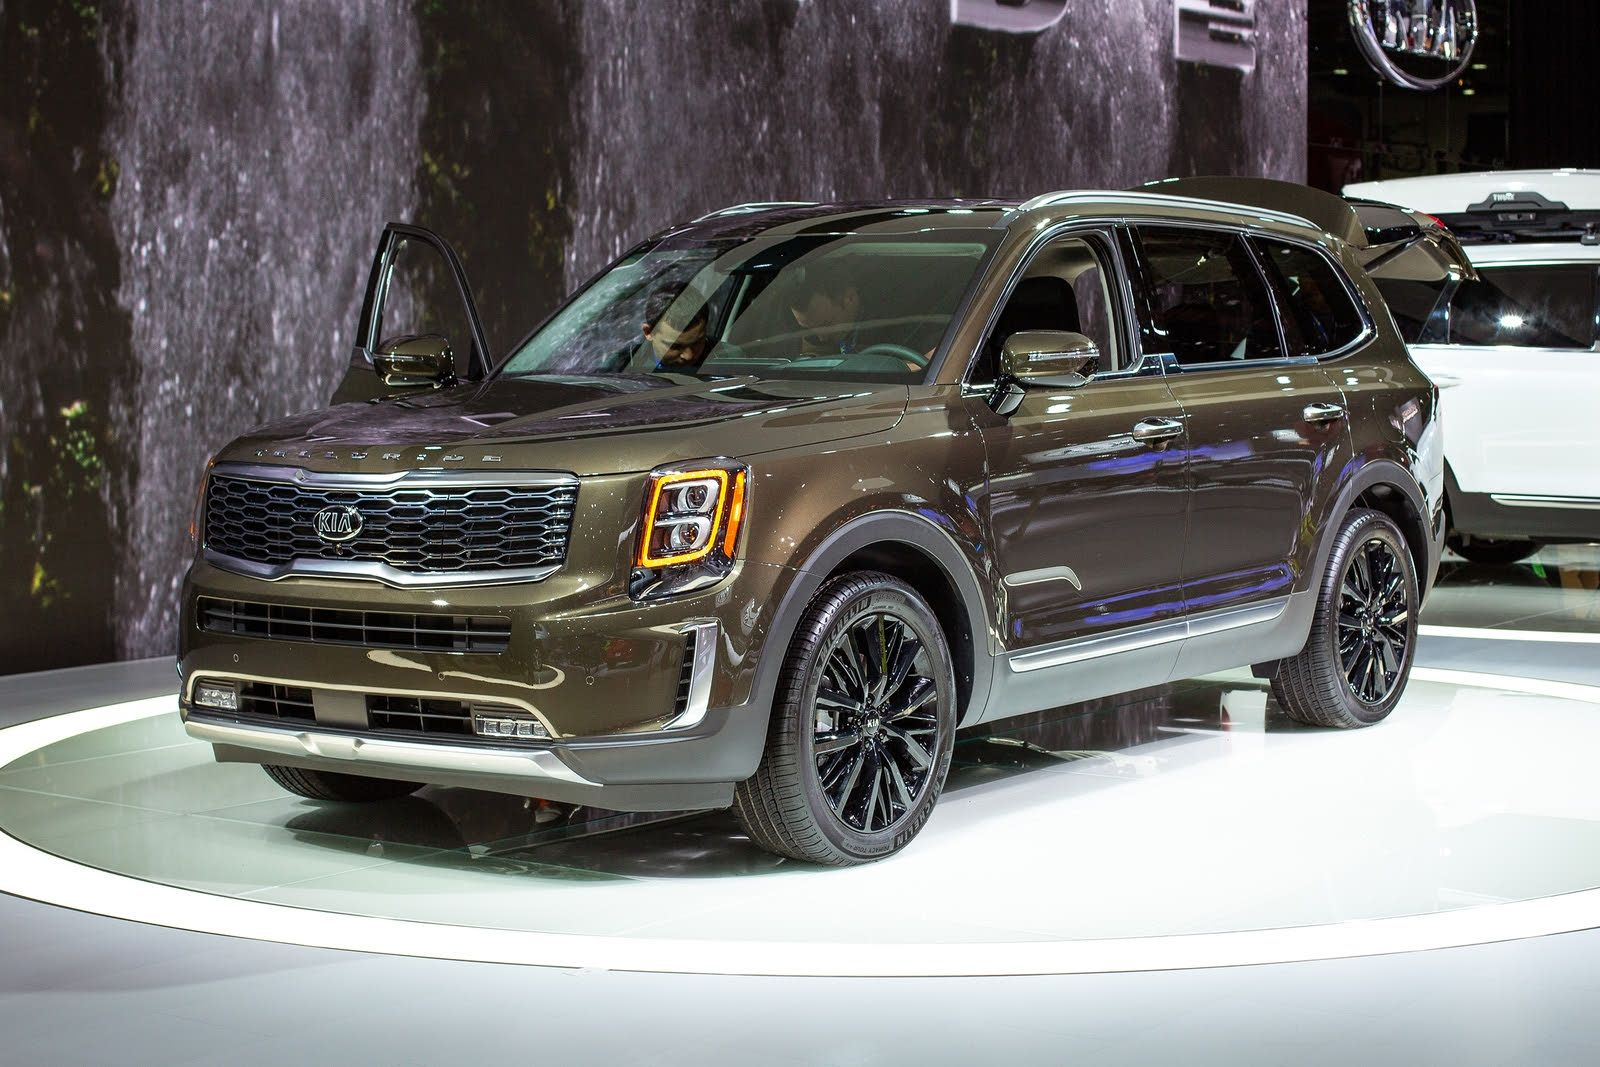 The 2020 Kia Telluride is predestined to end up being the